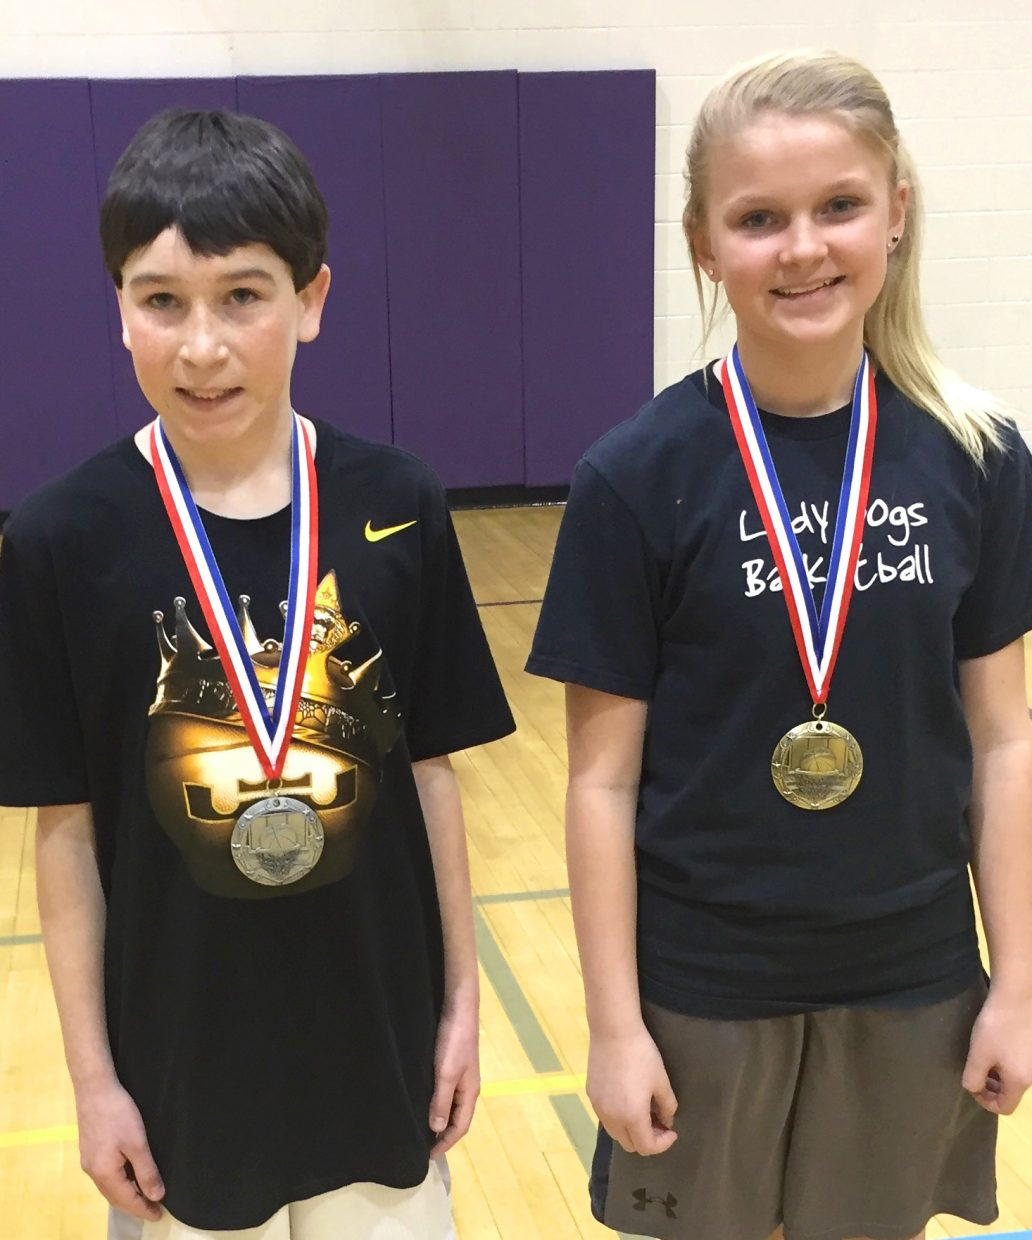 Craig's Tanner Etzler, left, and Jacie Evenson display their medals won at the state round of the Elks National Hoop Shoot Free Throw Contest. The two both won at the local and district levels, with Evenson qualifying to move on to regionals next.